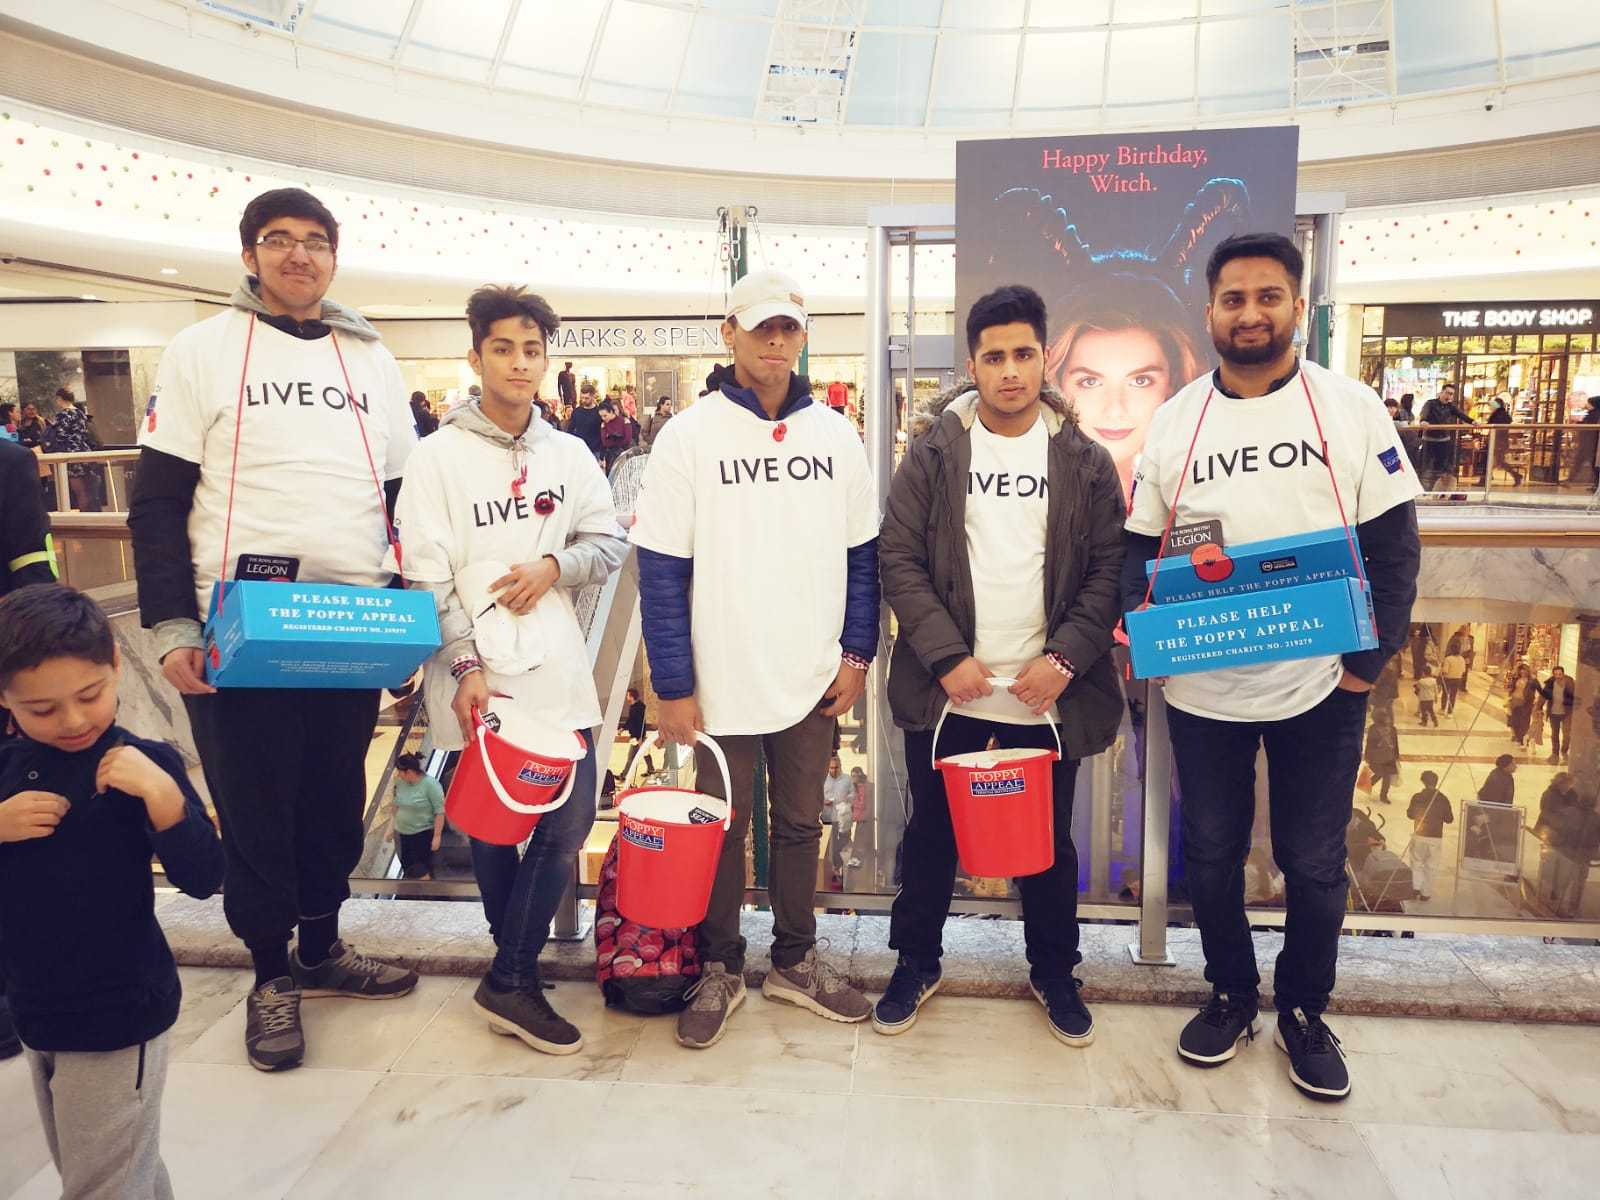 Members of a youth association have been selling poppies